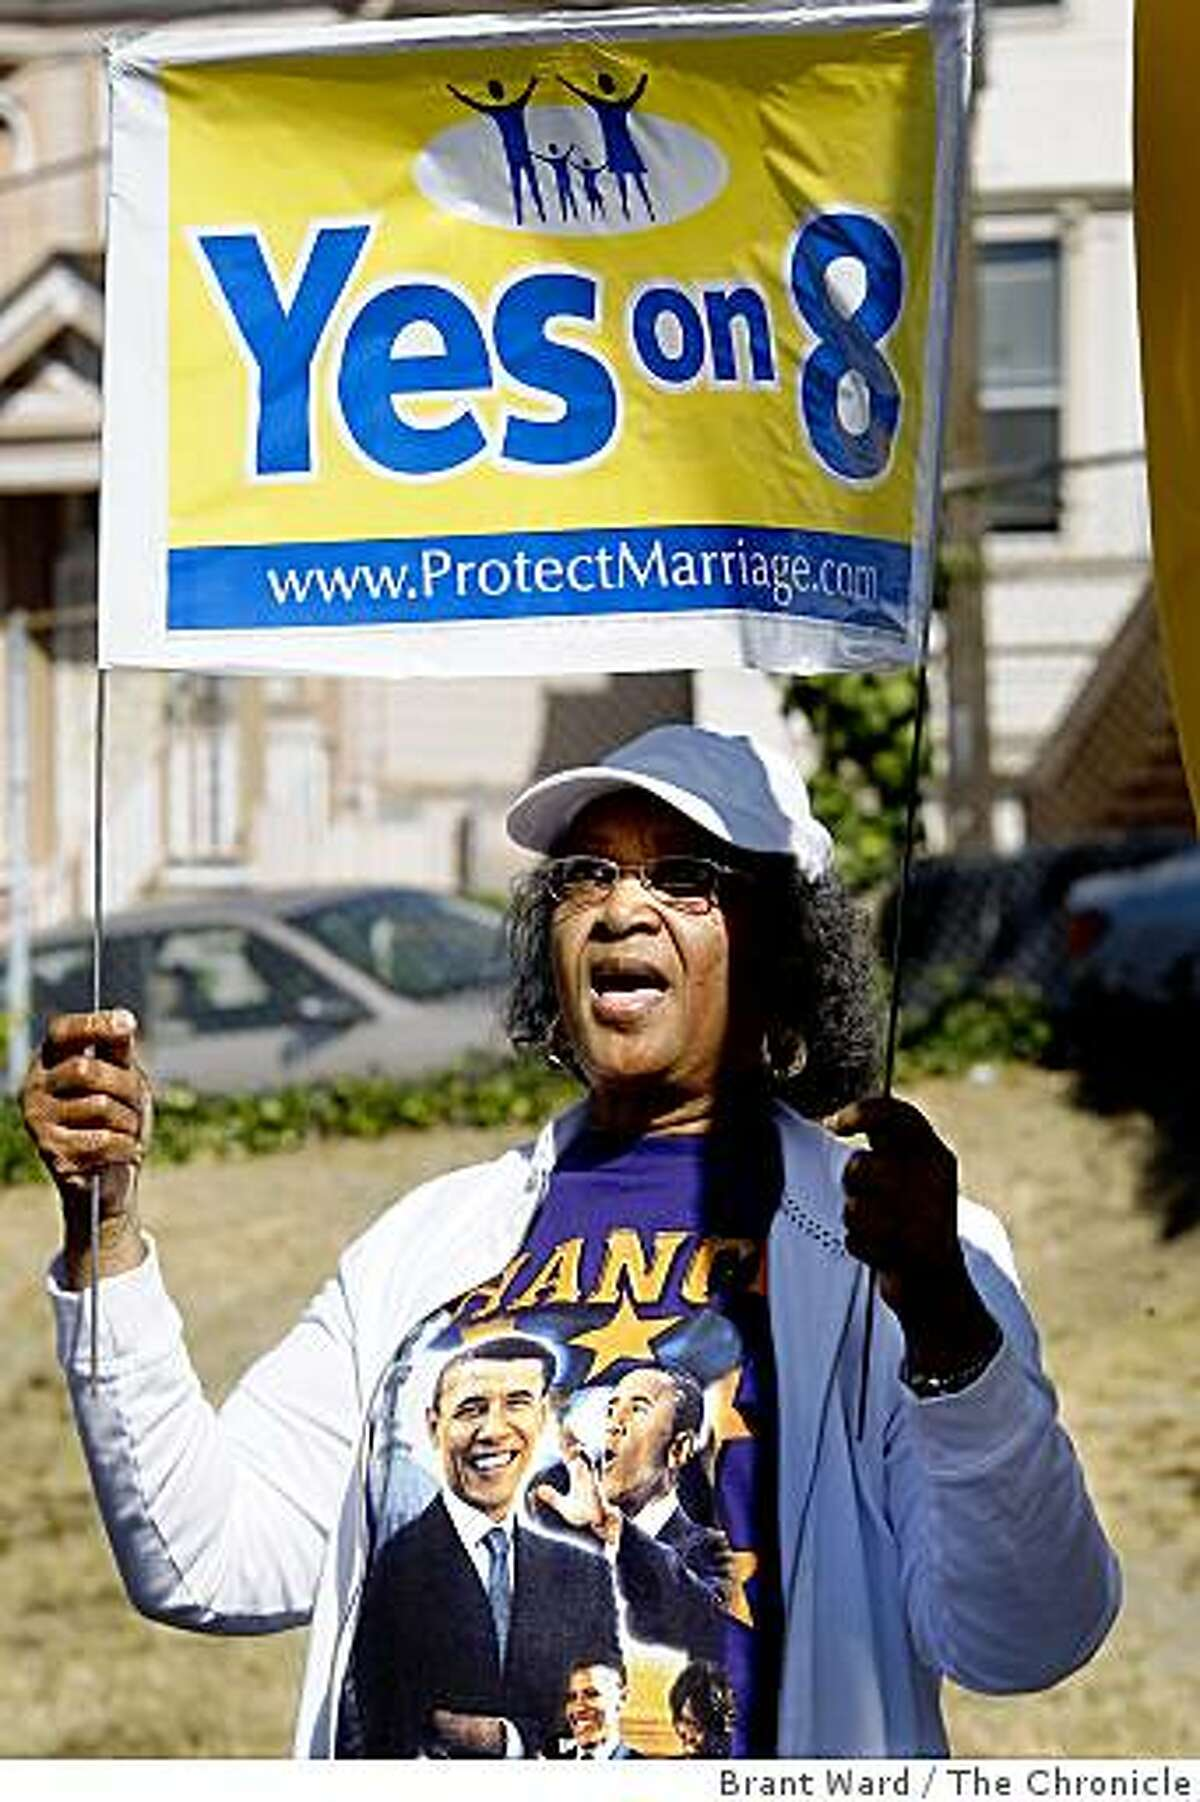 Gwen Williams from Oakland wore an Obama shirt while attending the rally. The bus tour in support of Proposition 8 arrived at the Foothill Missionary Baptist Church in Oakland Tuesday October 21, 2008.